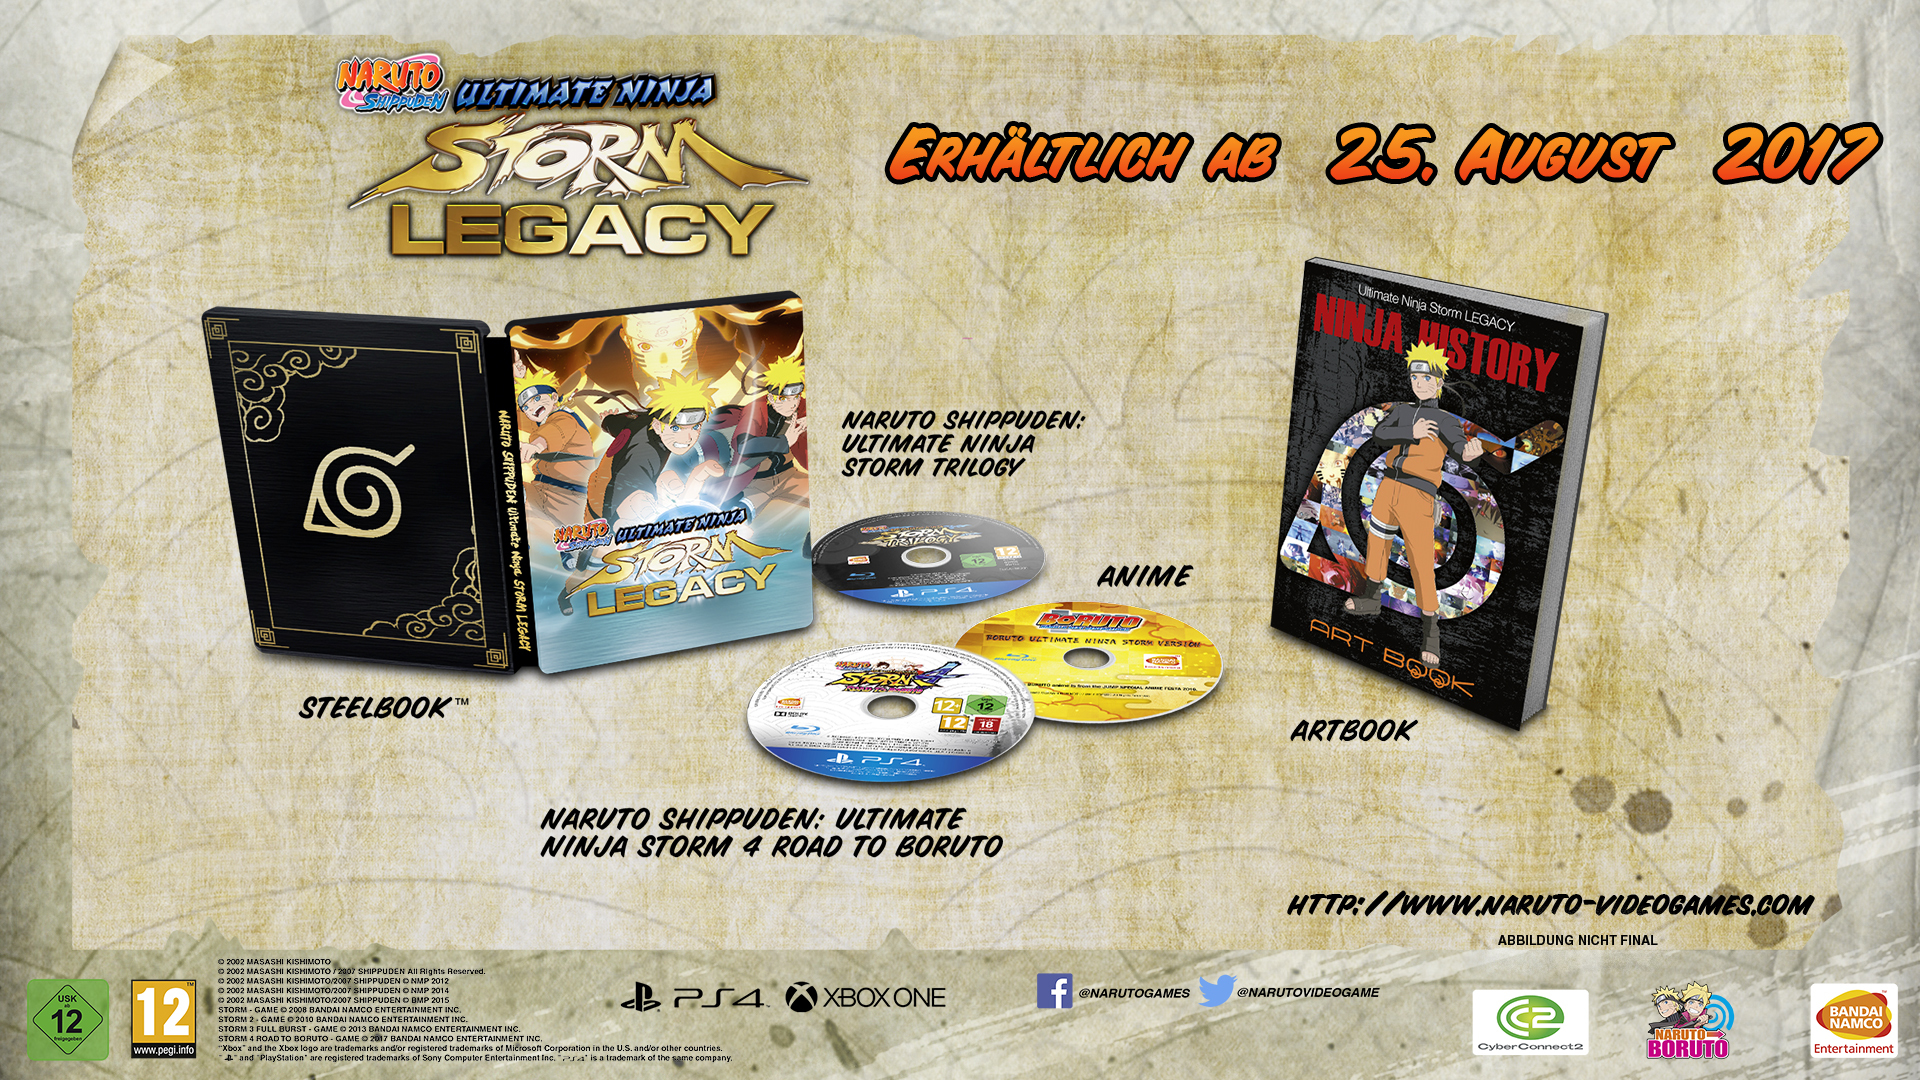 Pictures of Naruto Shippuden: Ultimate Ninja Storm Legacy 5/7